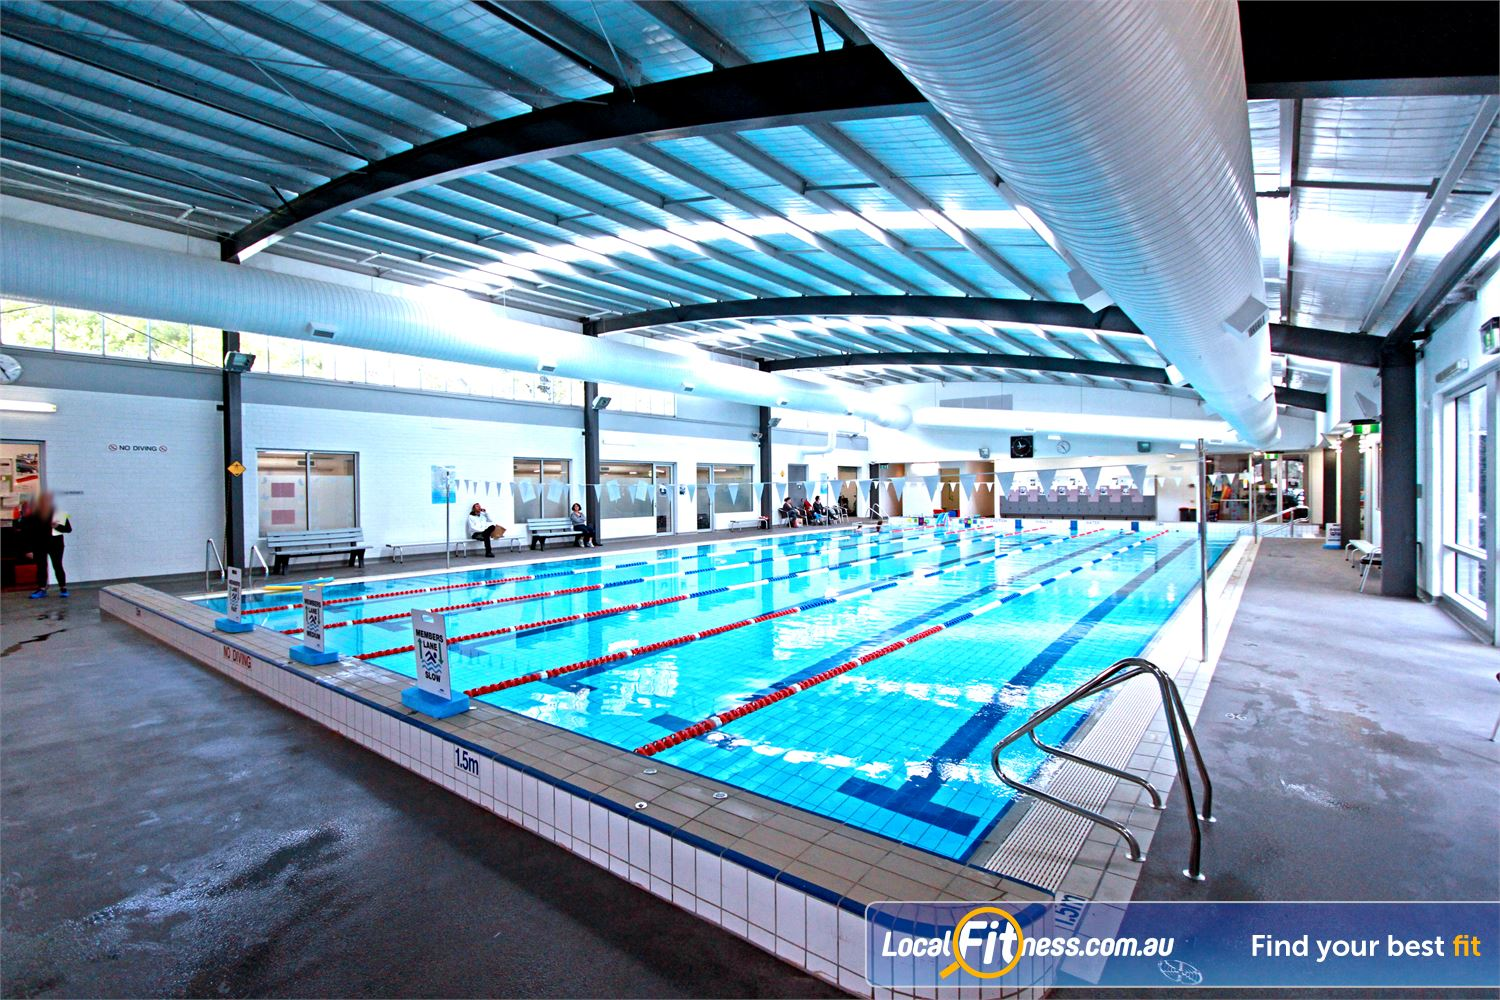 Monbulk Aquatic Centre Monbulk Our 25m indoor heated Monbulk swimming pool.